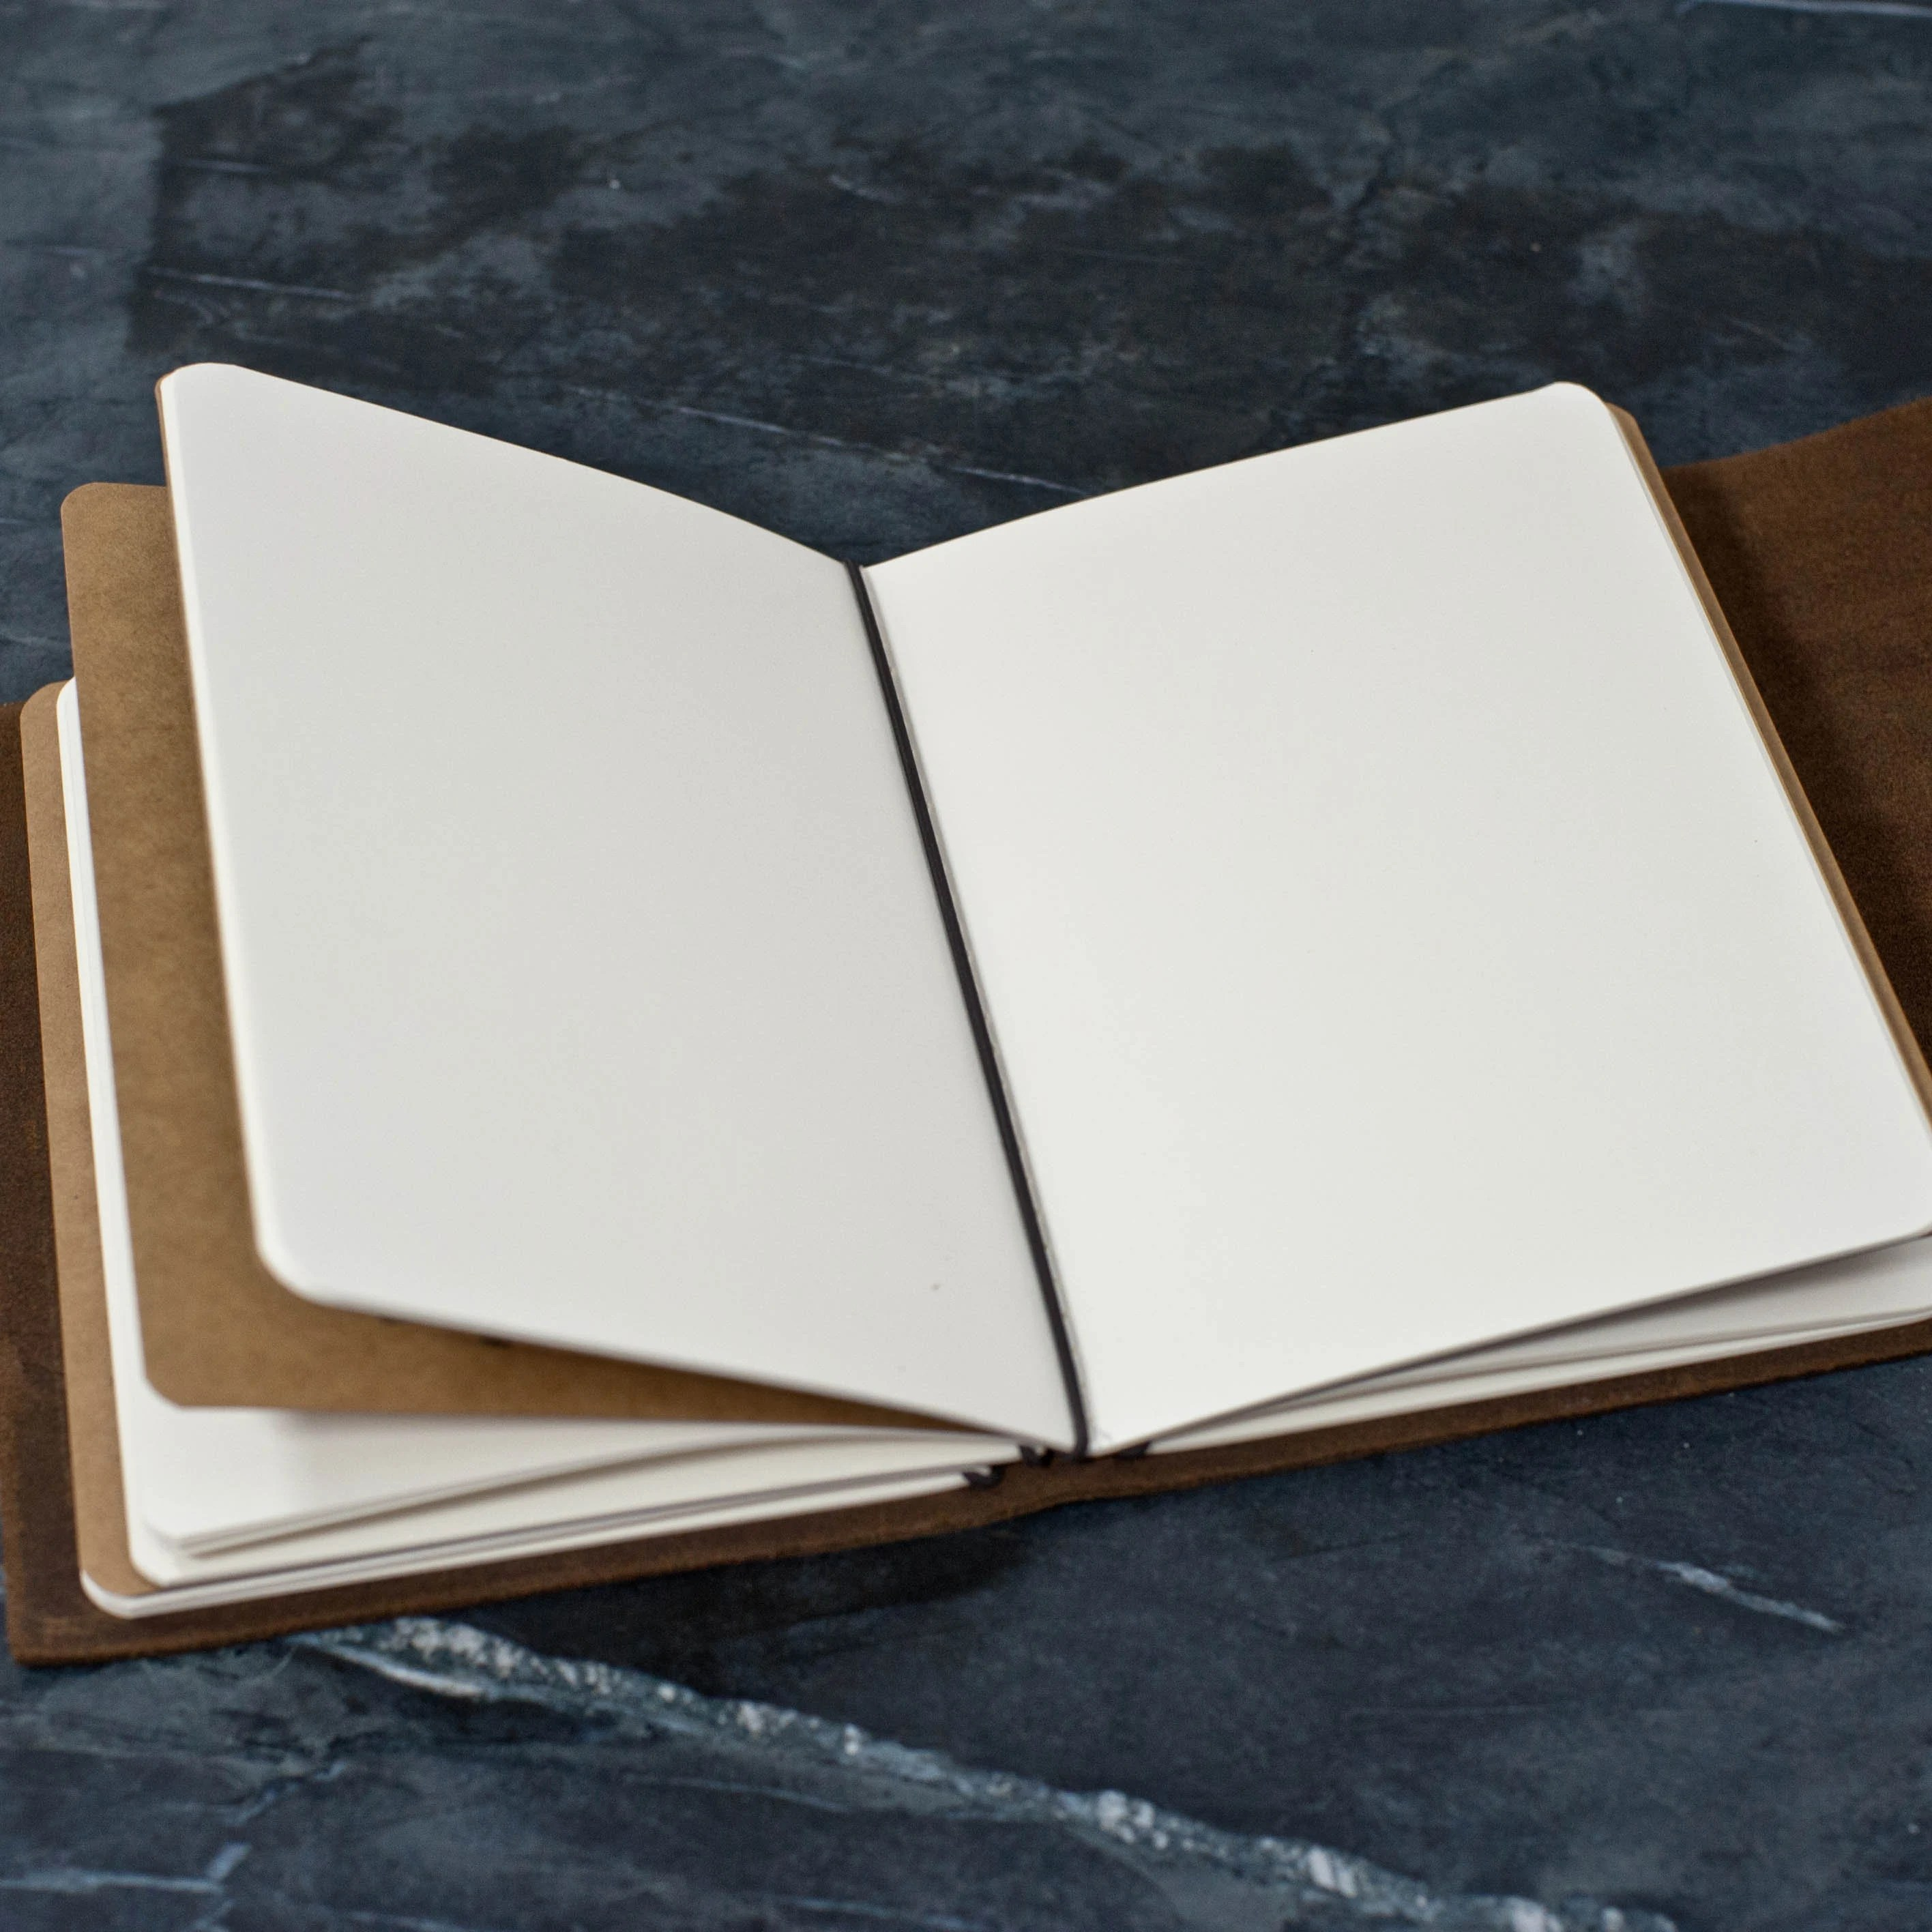 REFILLABLE Personalized Premium Leather Journal Notebook or image 1